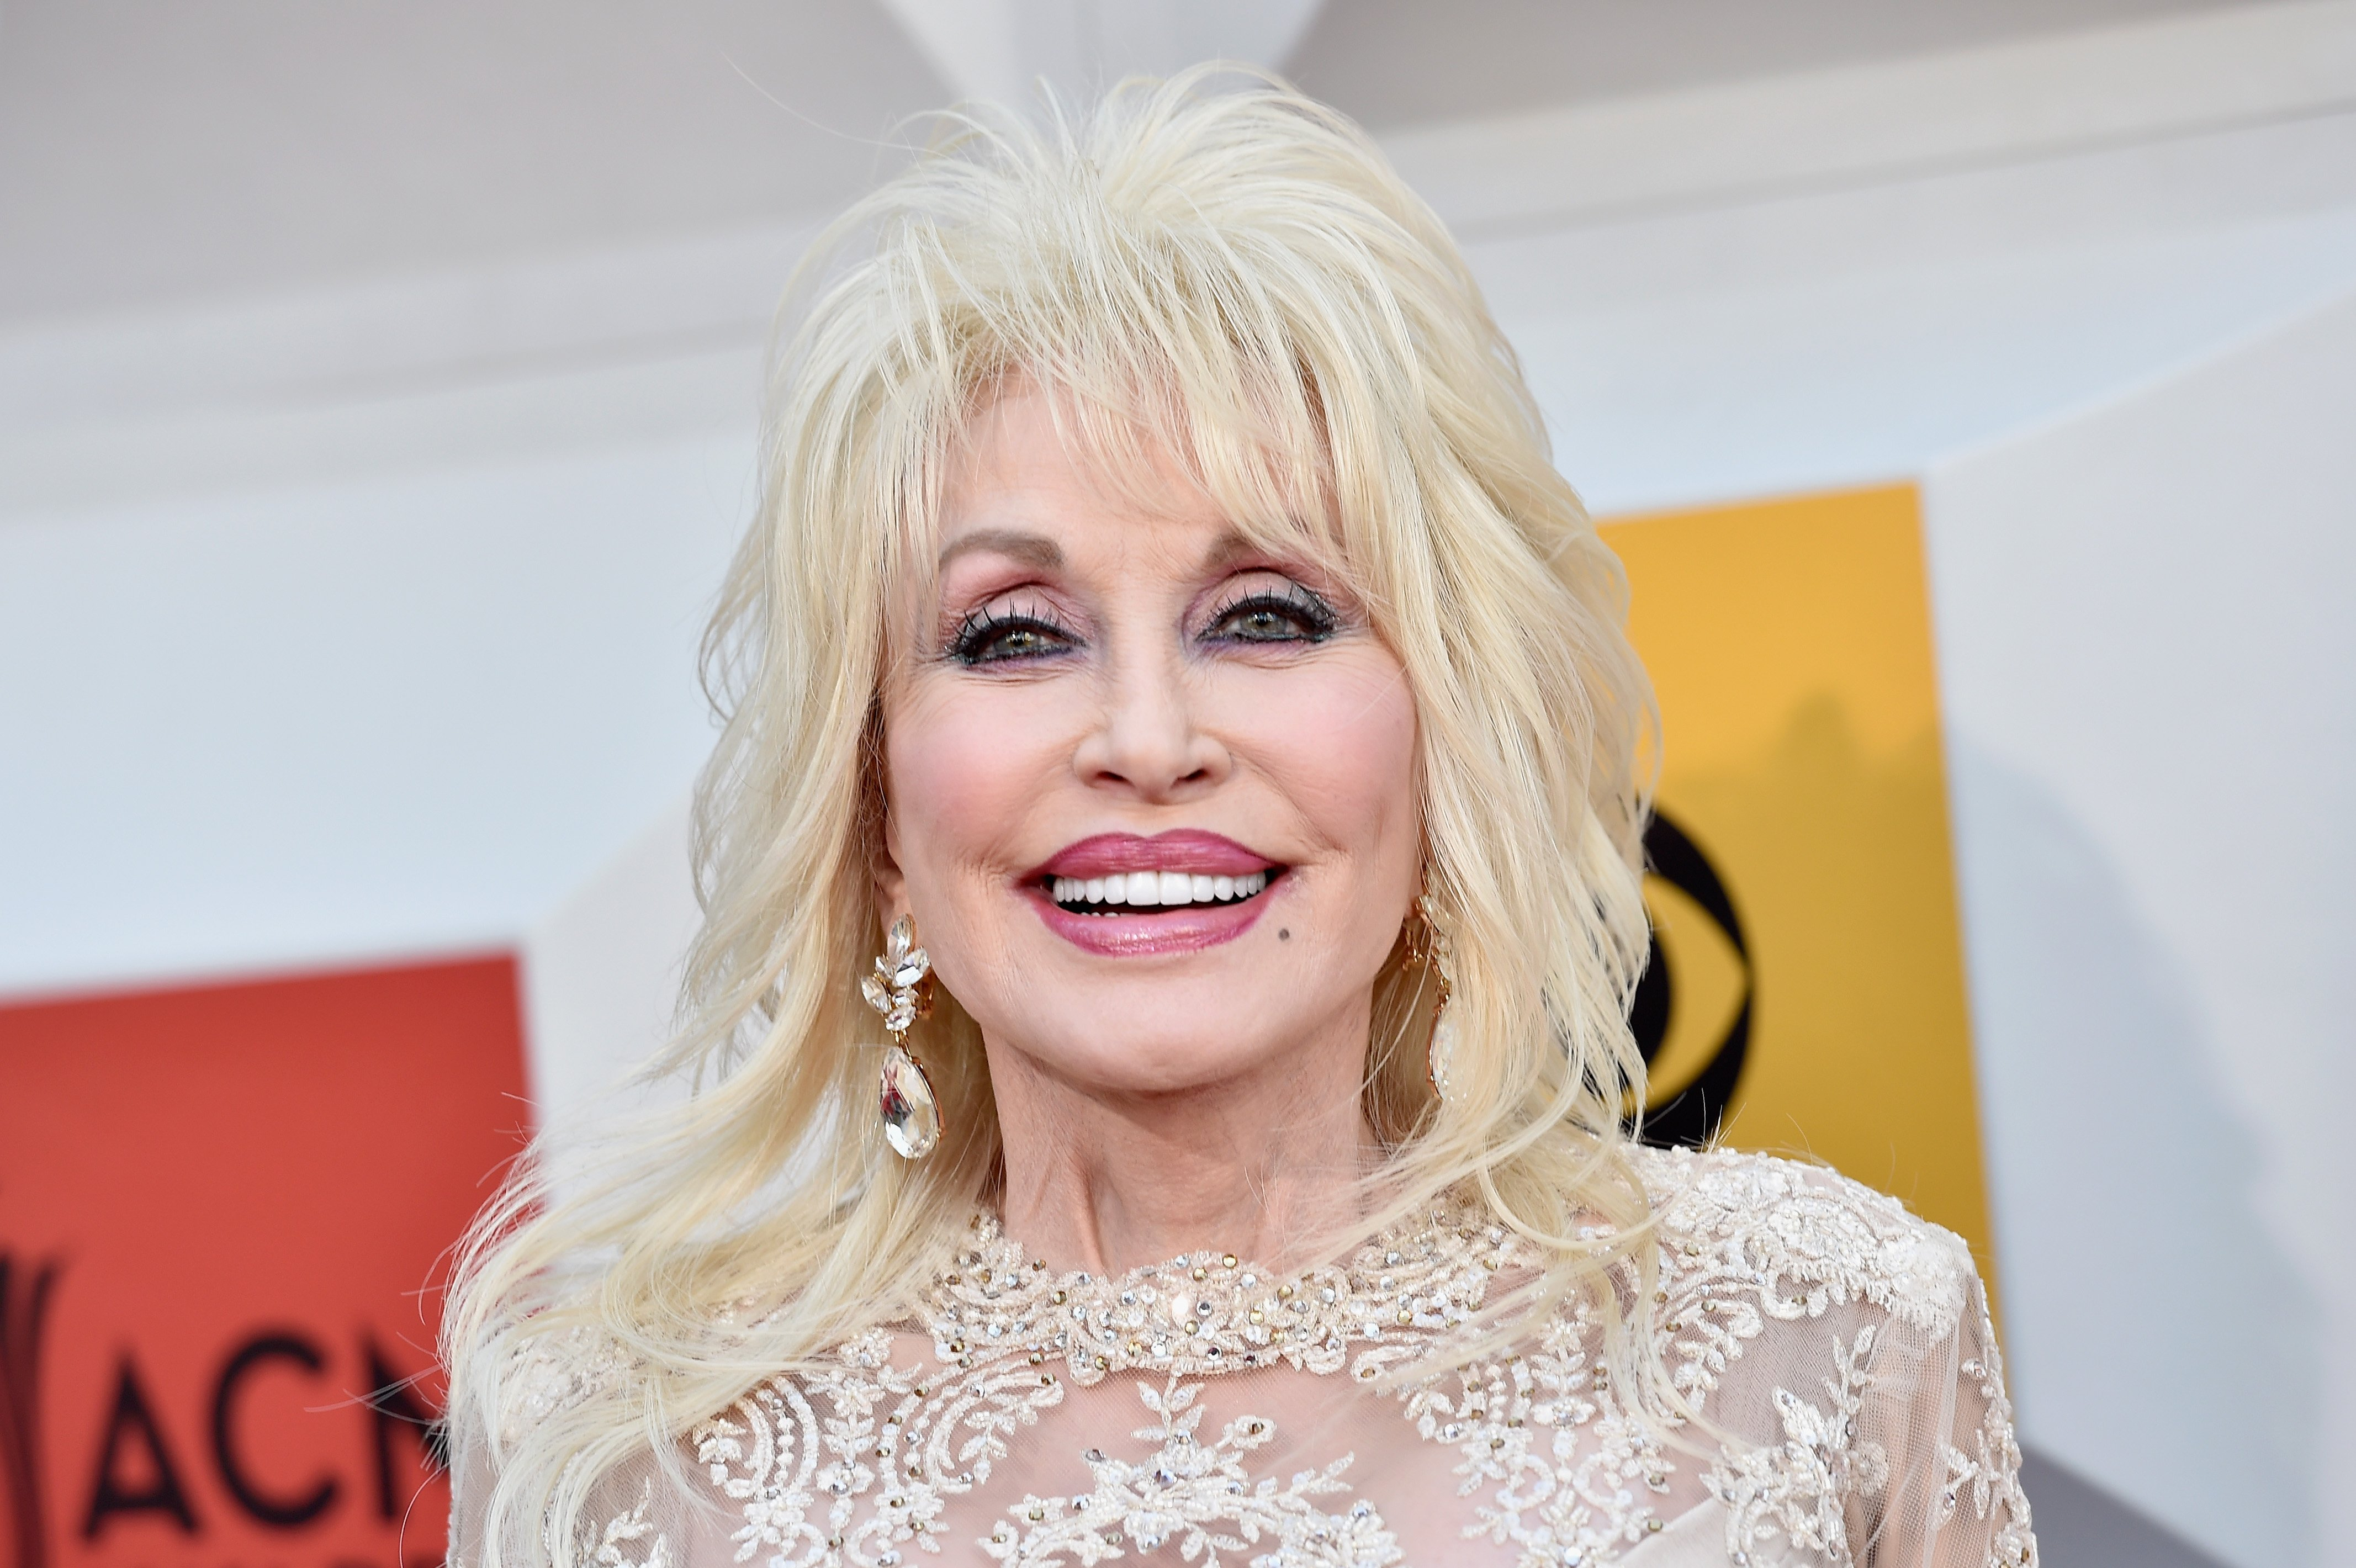 Image Credits: Getty Images / David Becker | Singer-songwriter Dolly Parton attends the 51st Academy of Country Music Awards at MGM Grand Garden Arena on April 3, 2016 in Las Vegas, Nevada.